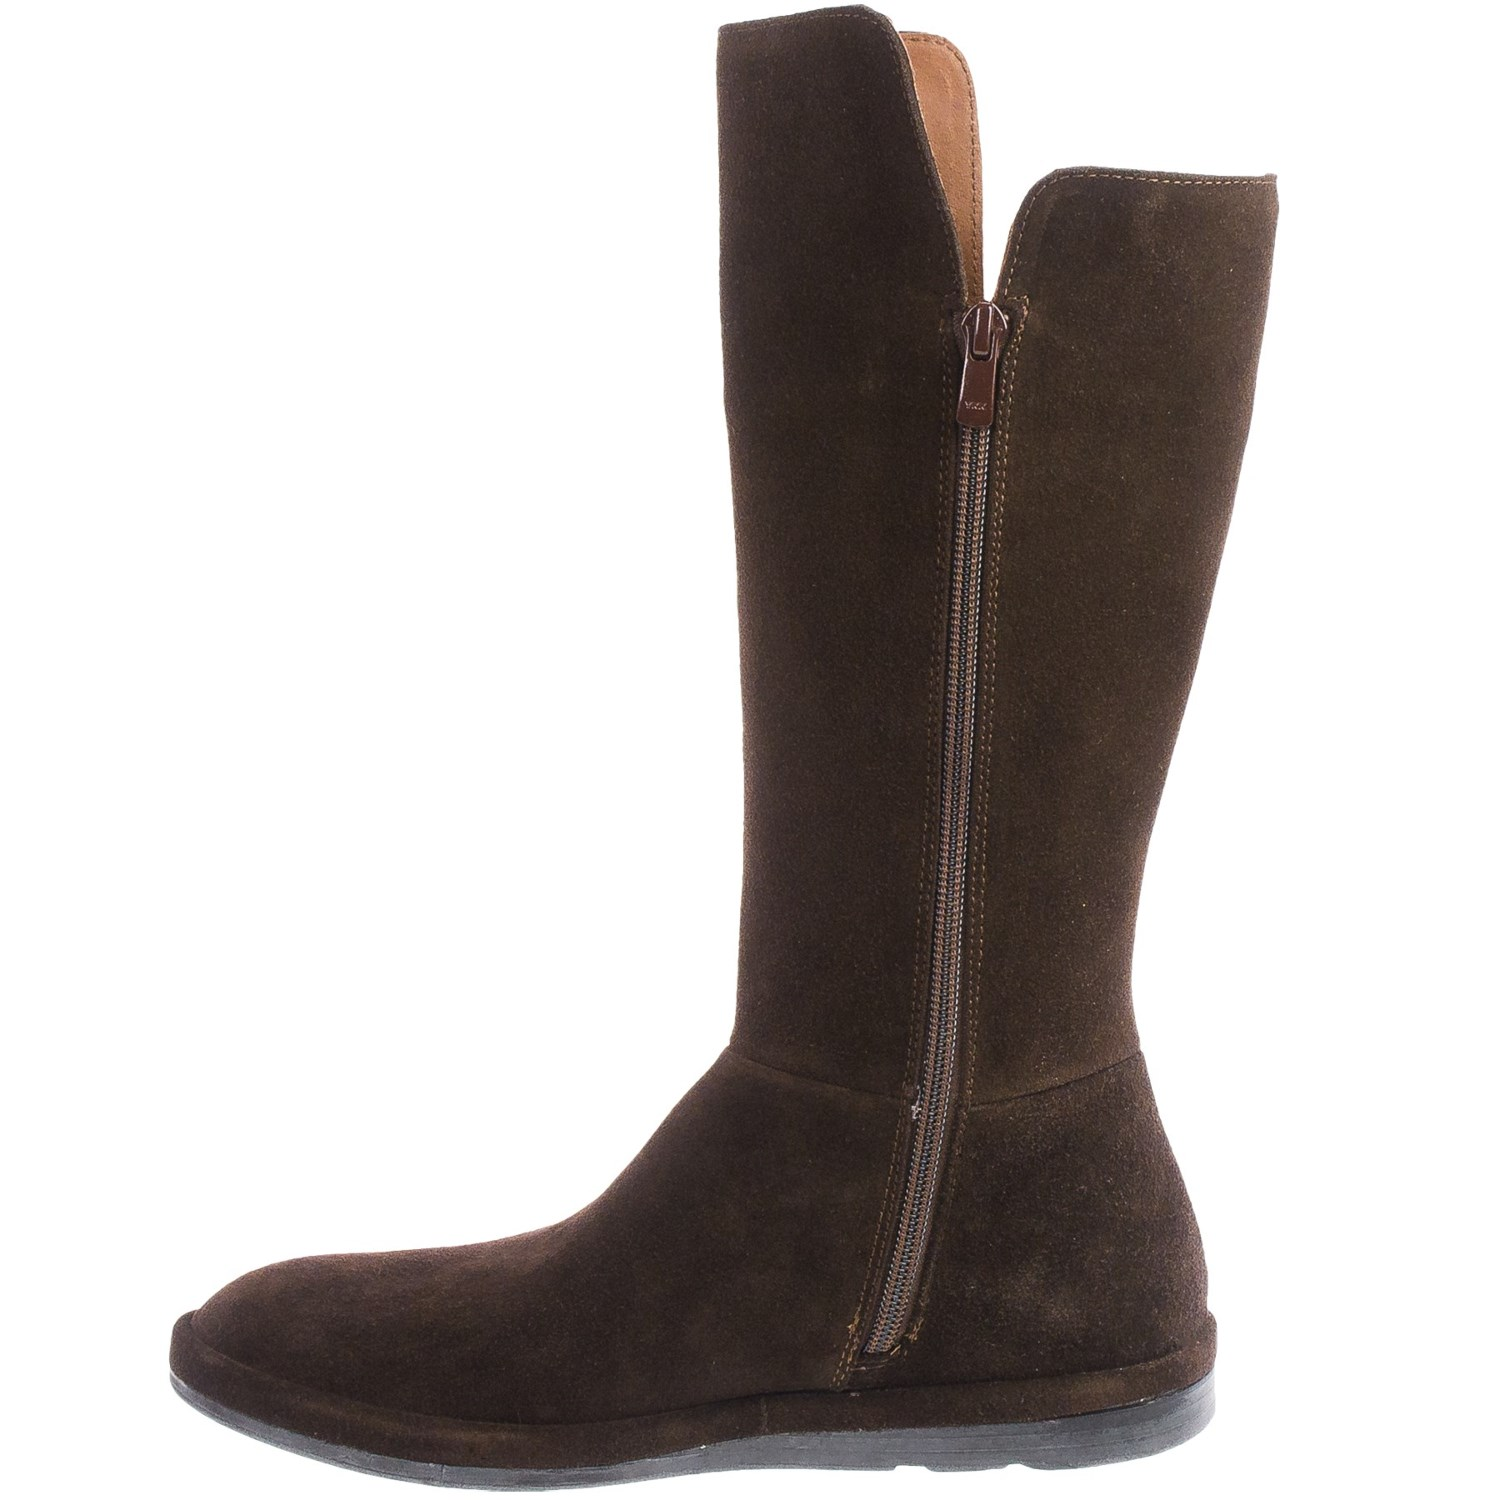 Eric Michael Ella Suede Boots (For Women) - Save 80%